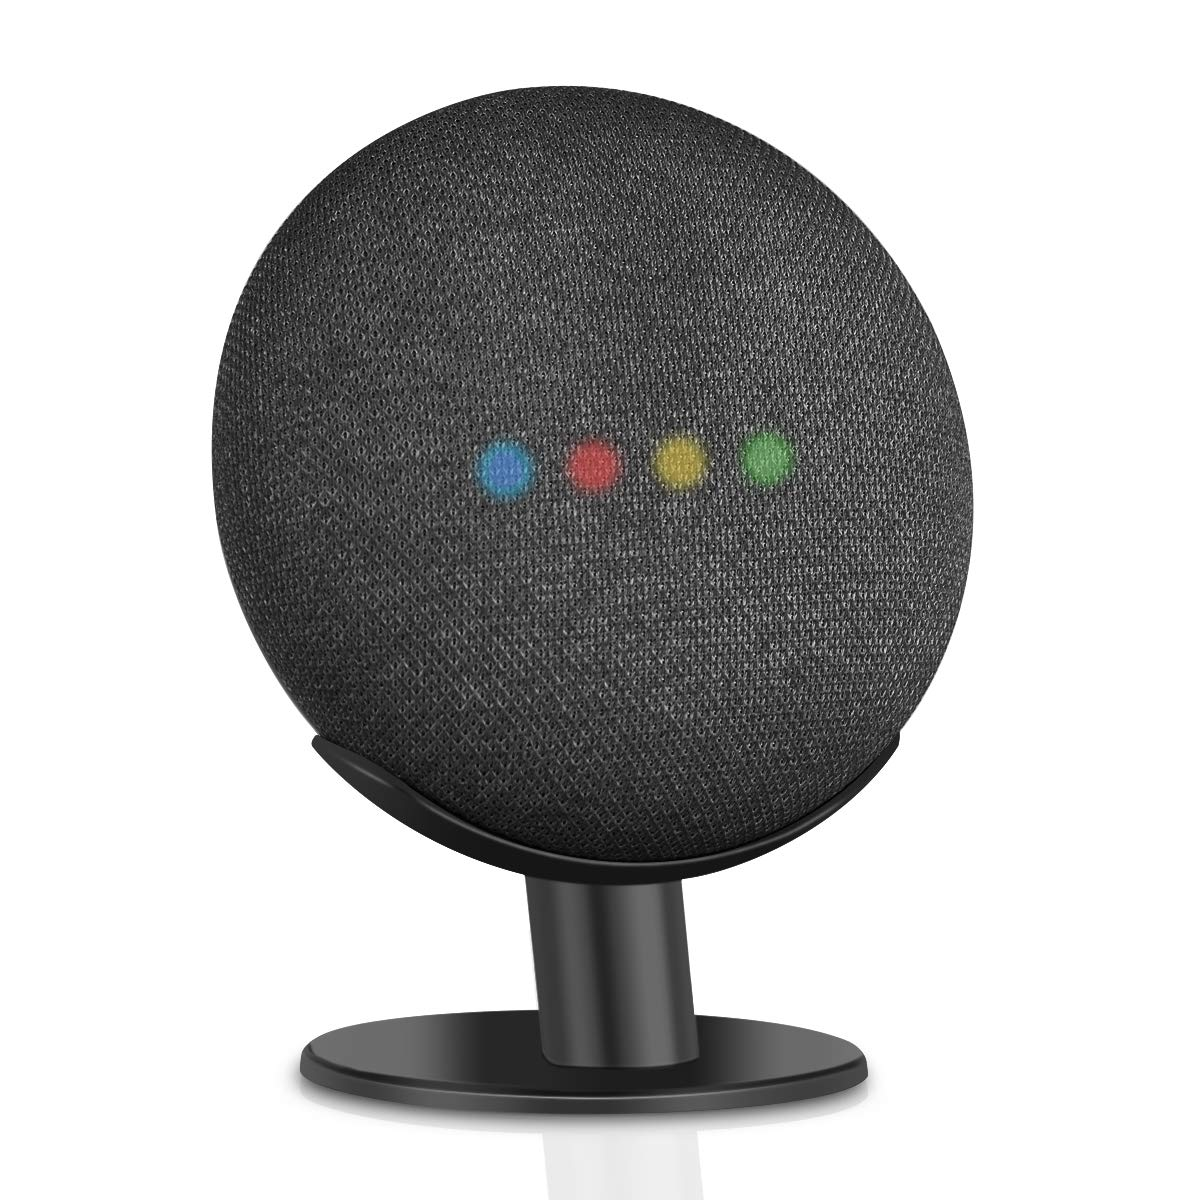 Black Sound Visibility and Appearance Improving Caremoo Pedestal Stand for Google Home Mini Metal Desktop Mount for Your Google Home Mini Voice Assistant